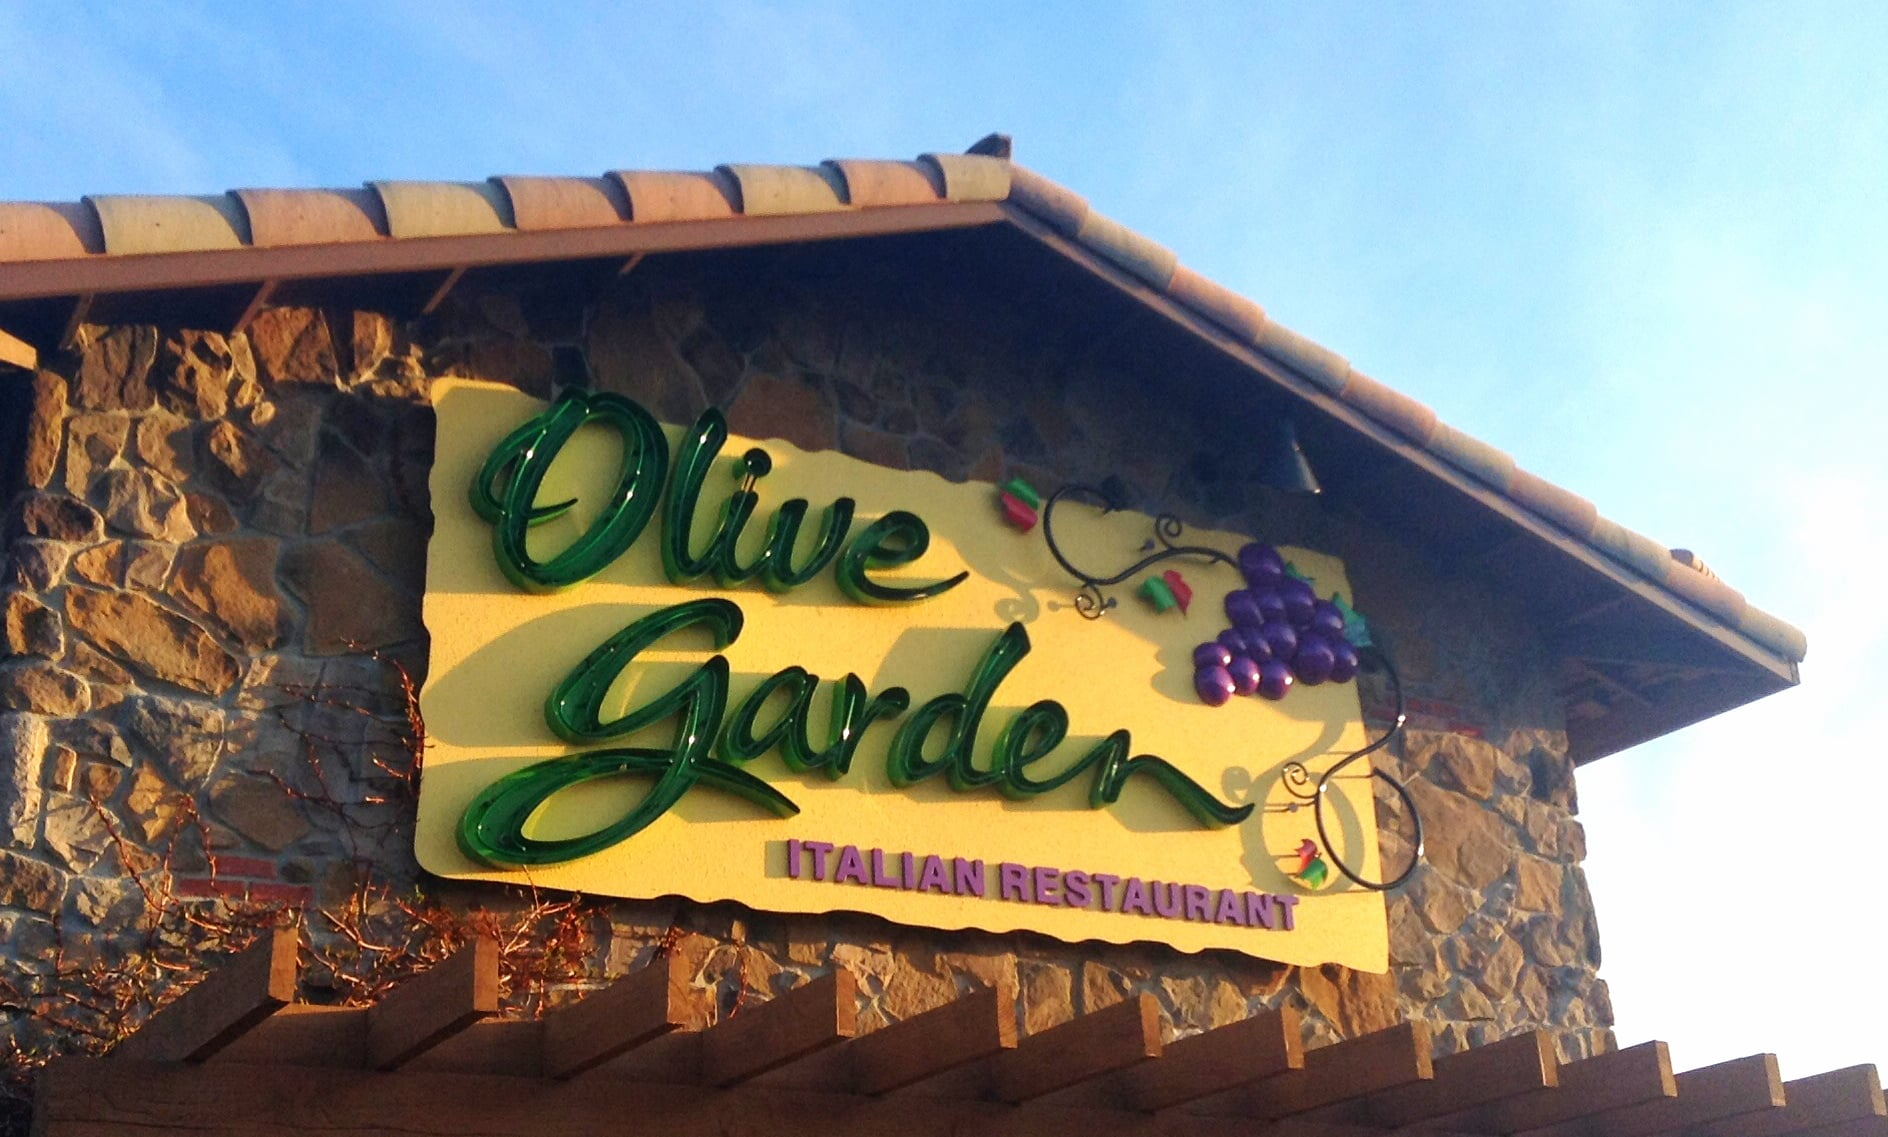 On the Keto Diet and Headed to Olive Garden? Here's What You Should Order